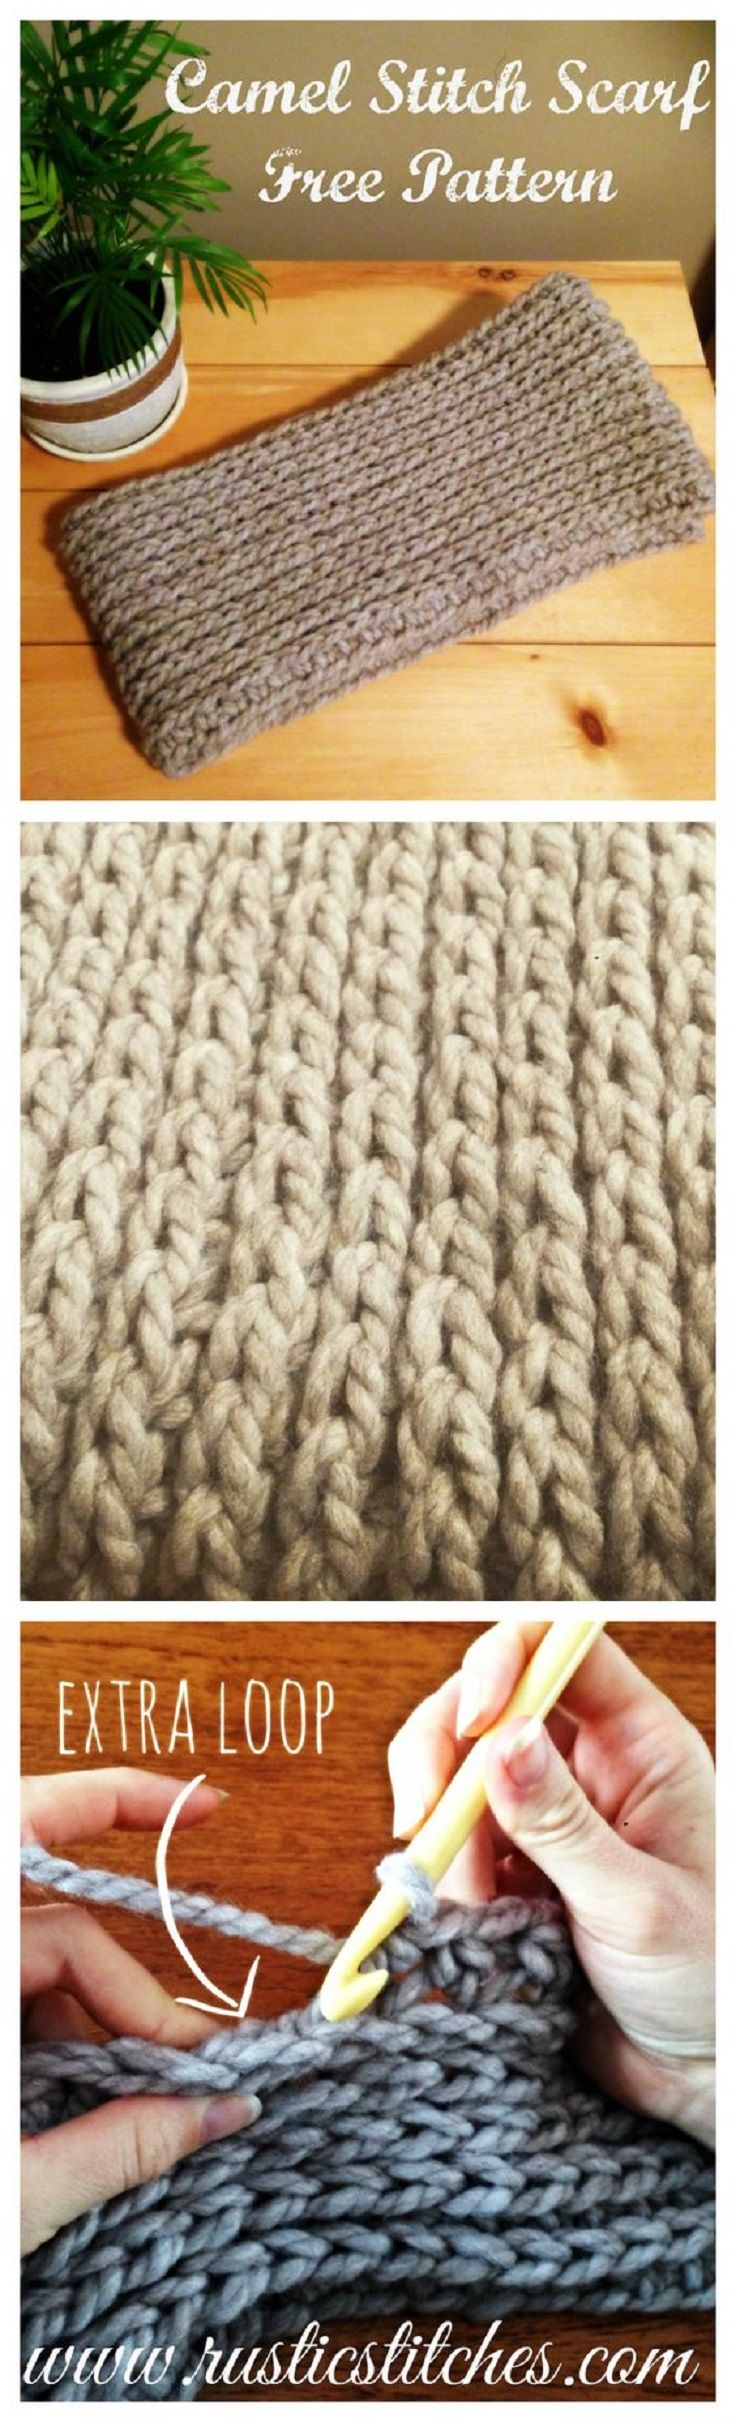 Crochet Camel Stitch Infinity Scarf Pattern - 15 Easy and Free Crochet Patterns to Stay Warm This Winter